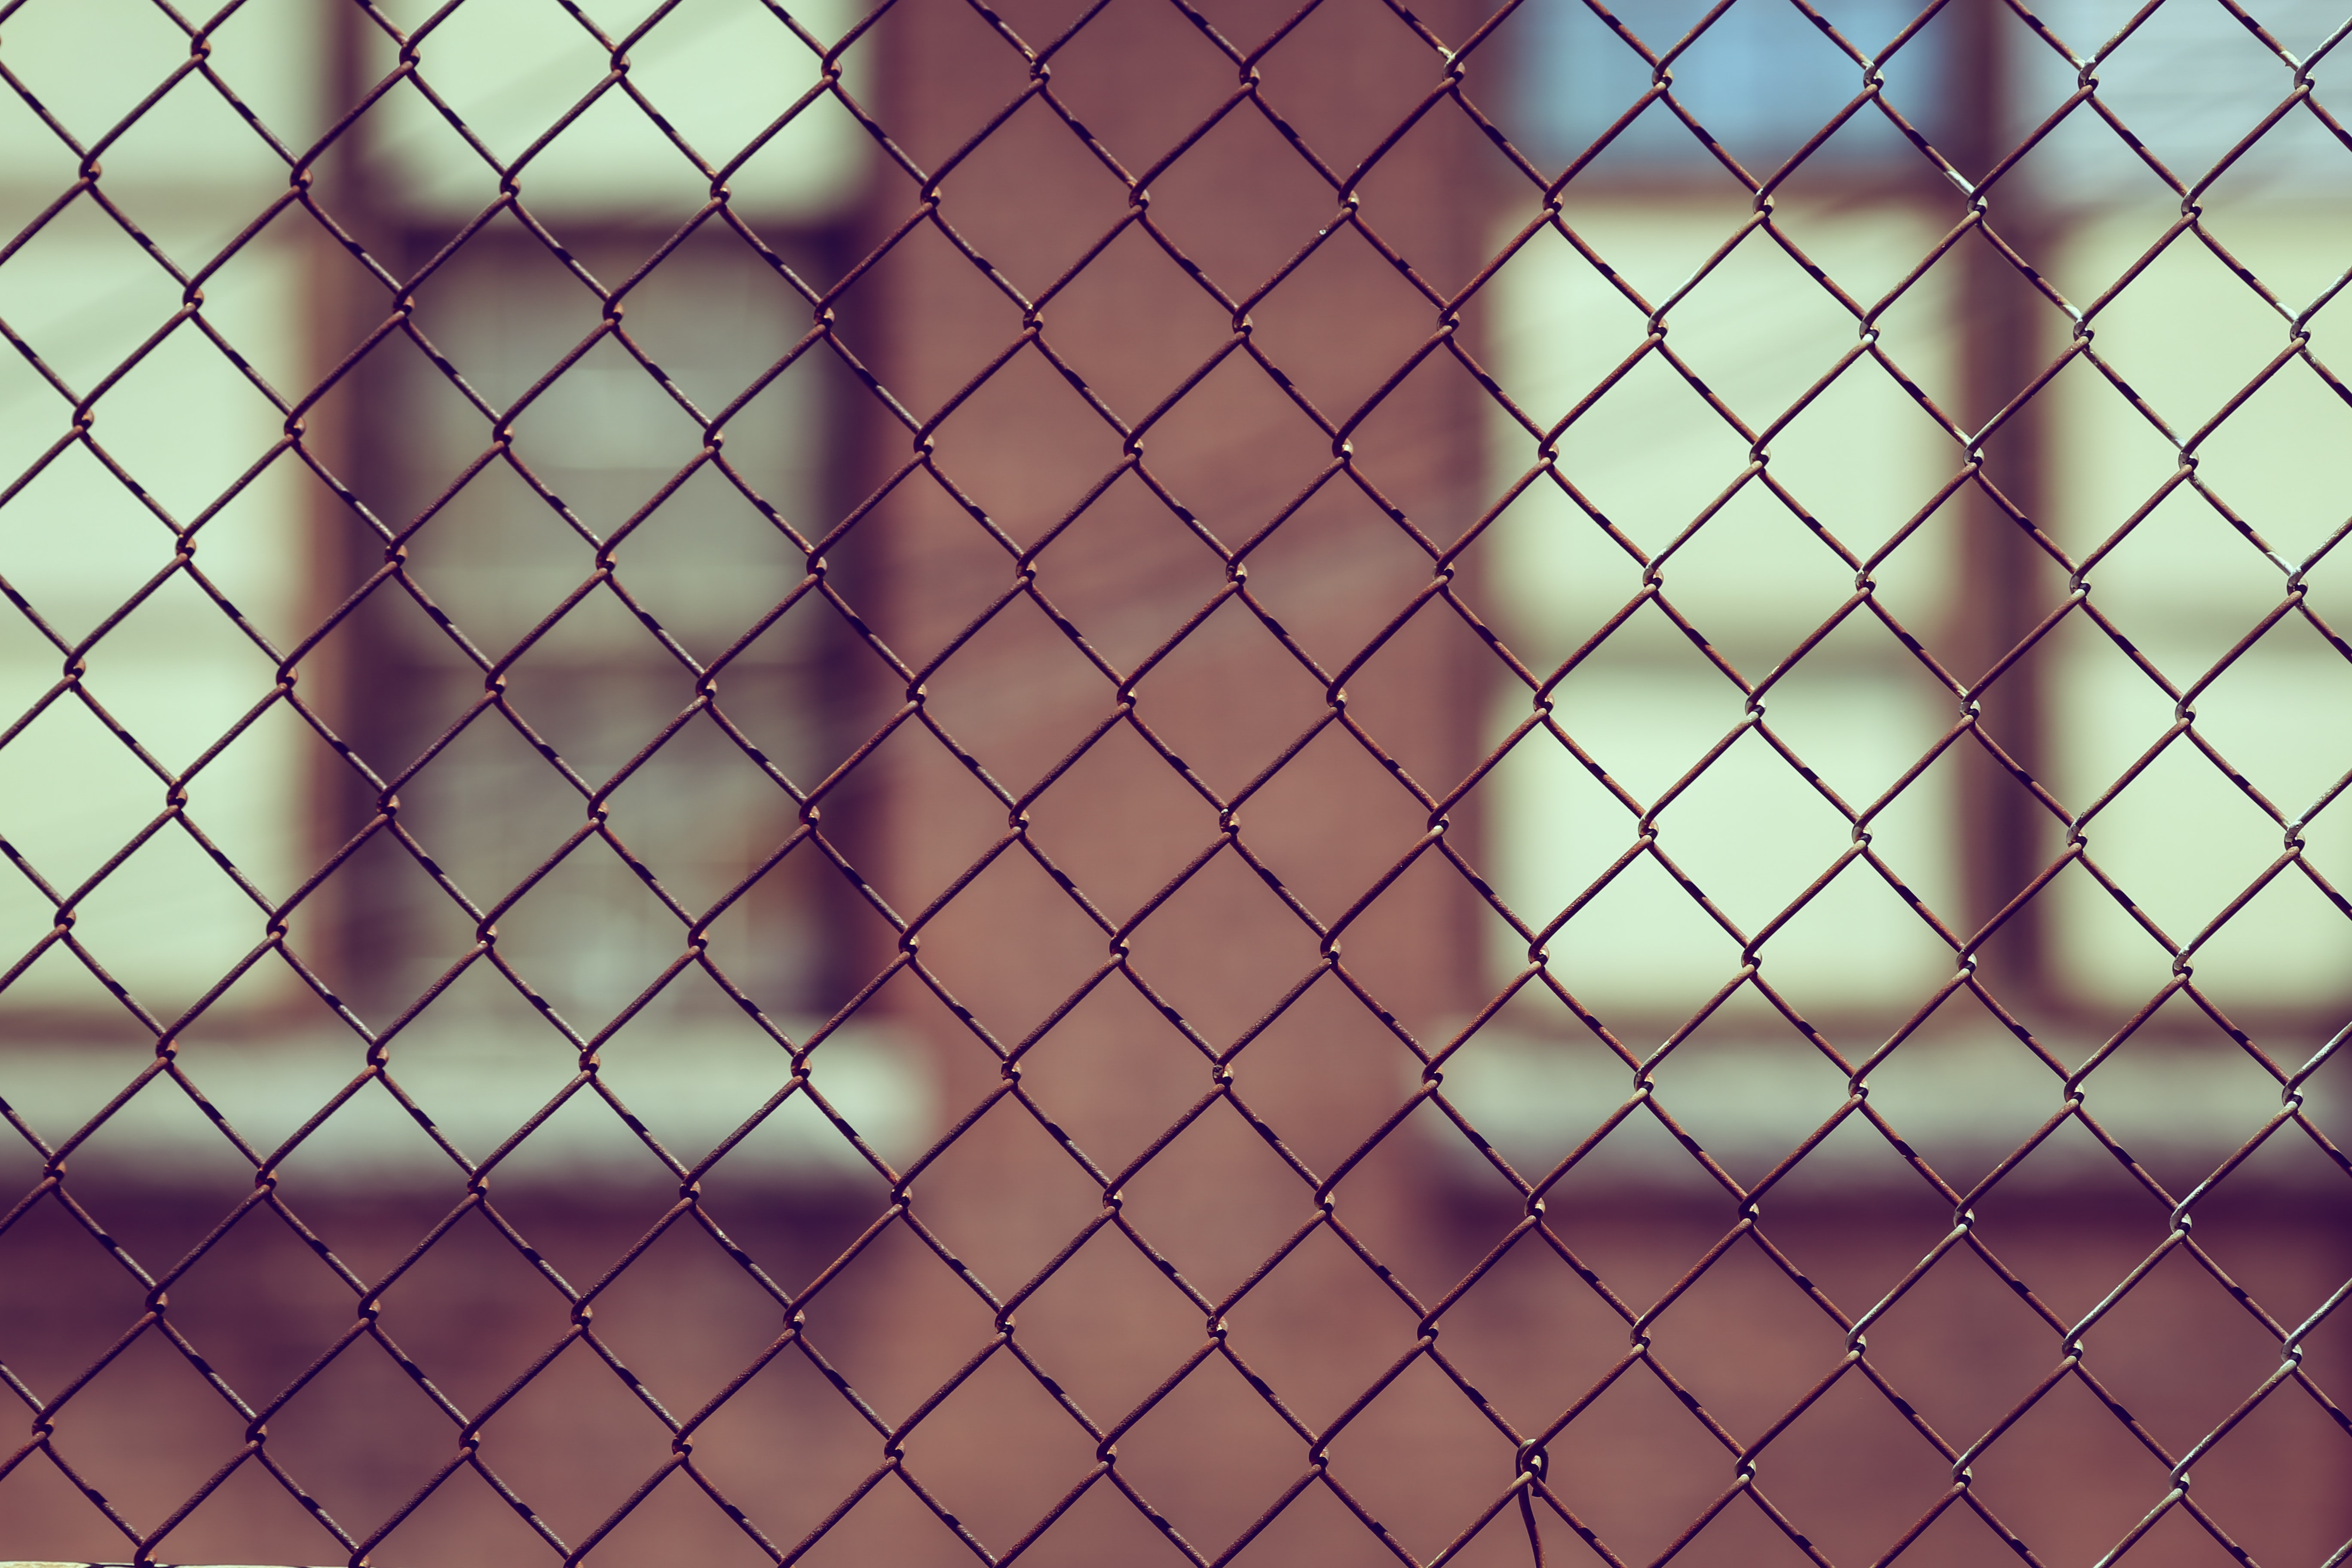 black chain-link fence